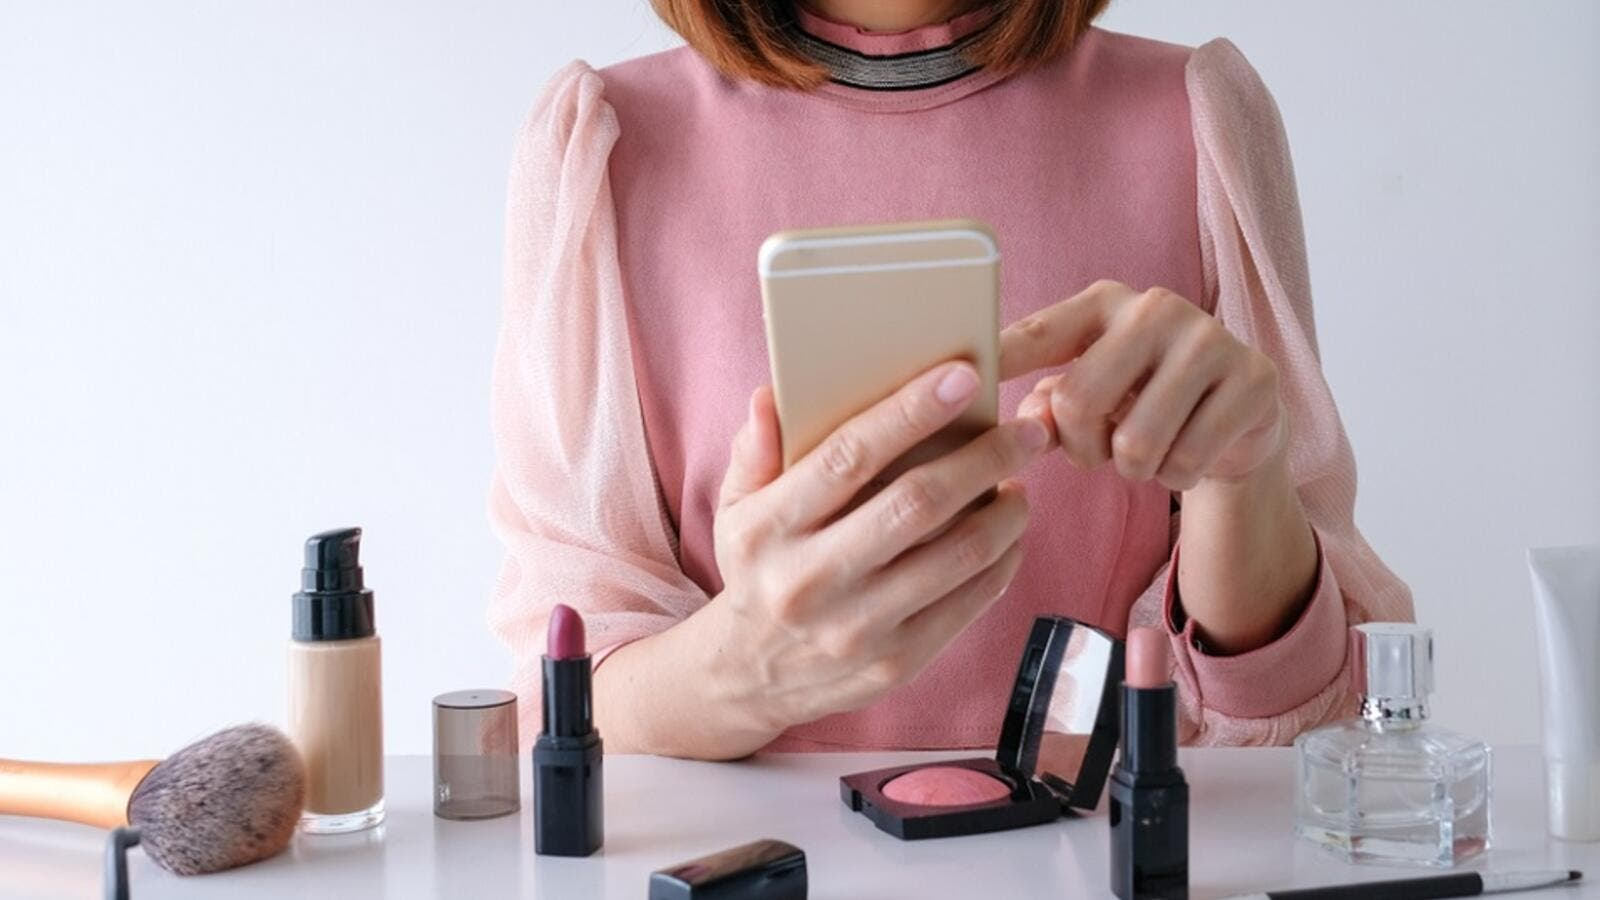 The tech-beauty relationship is already gaining a lot of attention from many online shoppers.